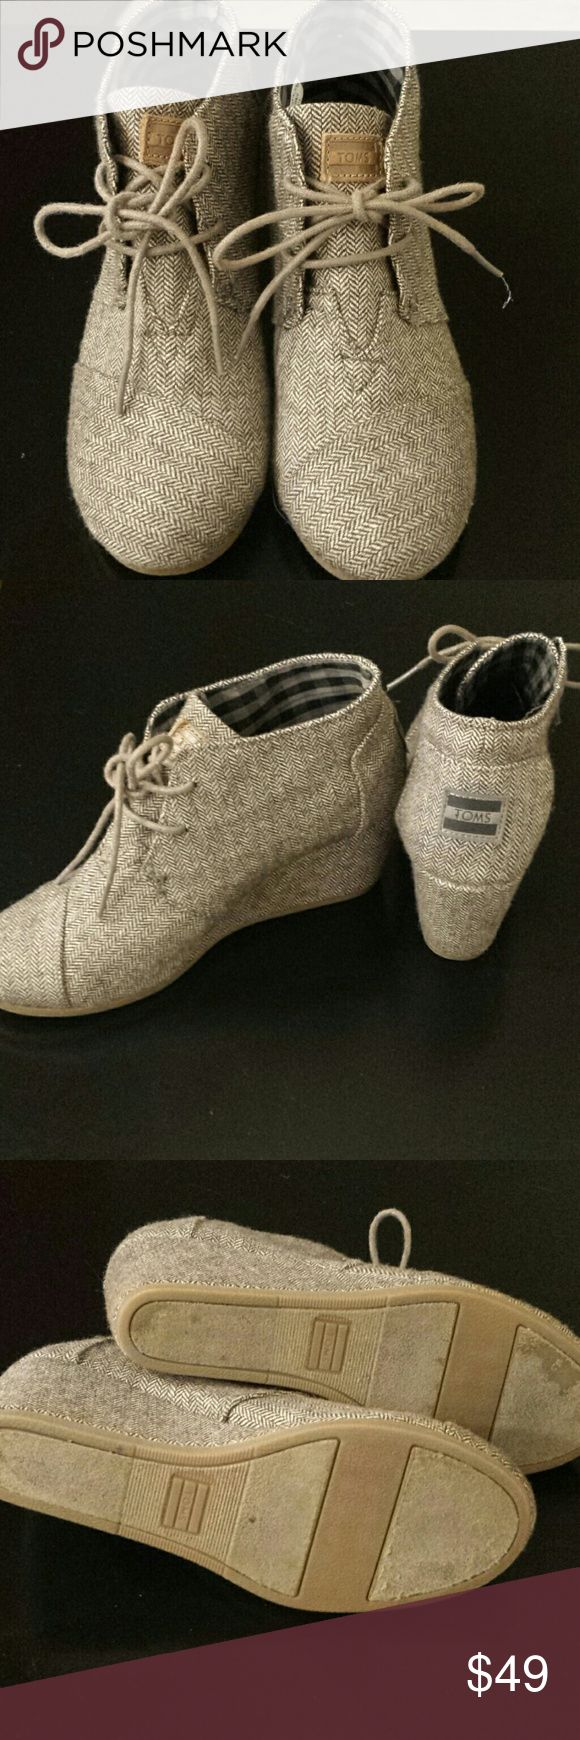 Wedge bootie Toms Chevron pattern grey-black classy wedge Tom booties. Great condition. TOMS Shoes Ankle Boots & Booties